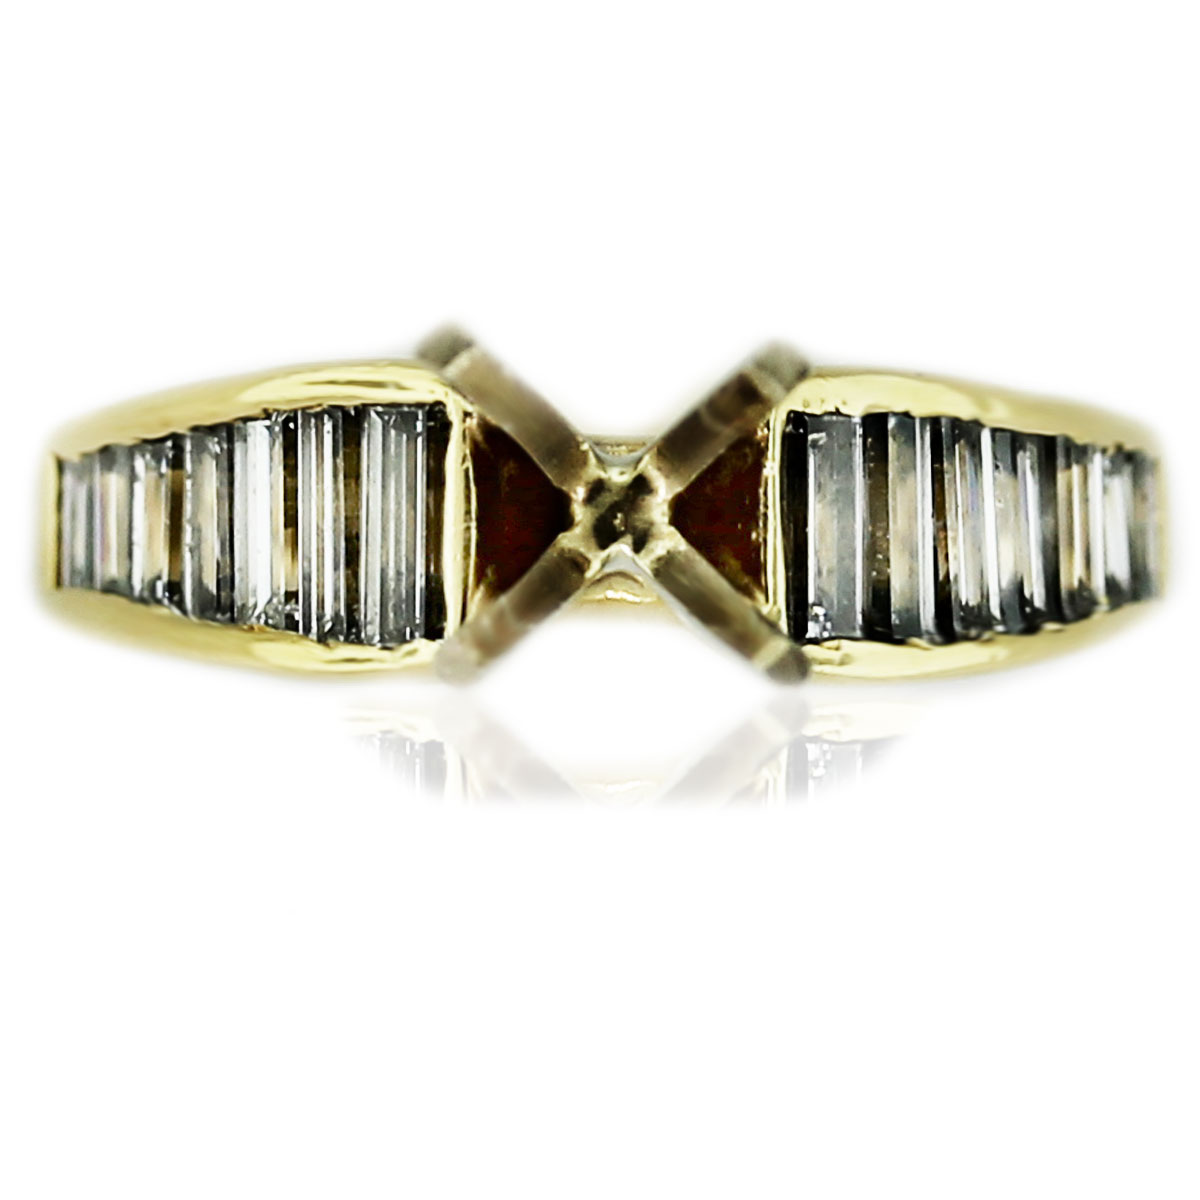 18k Yellow Gold Diamond Baguette 4 Prong Engagement Ring Mounting